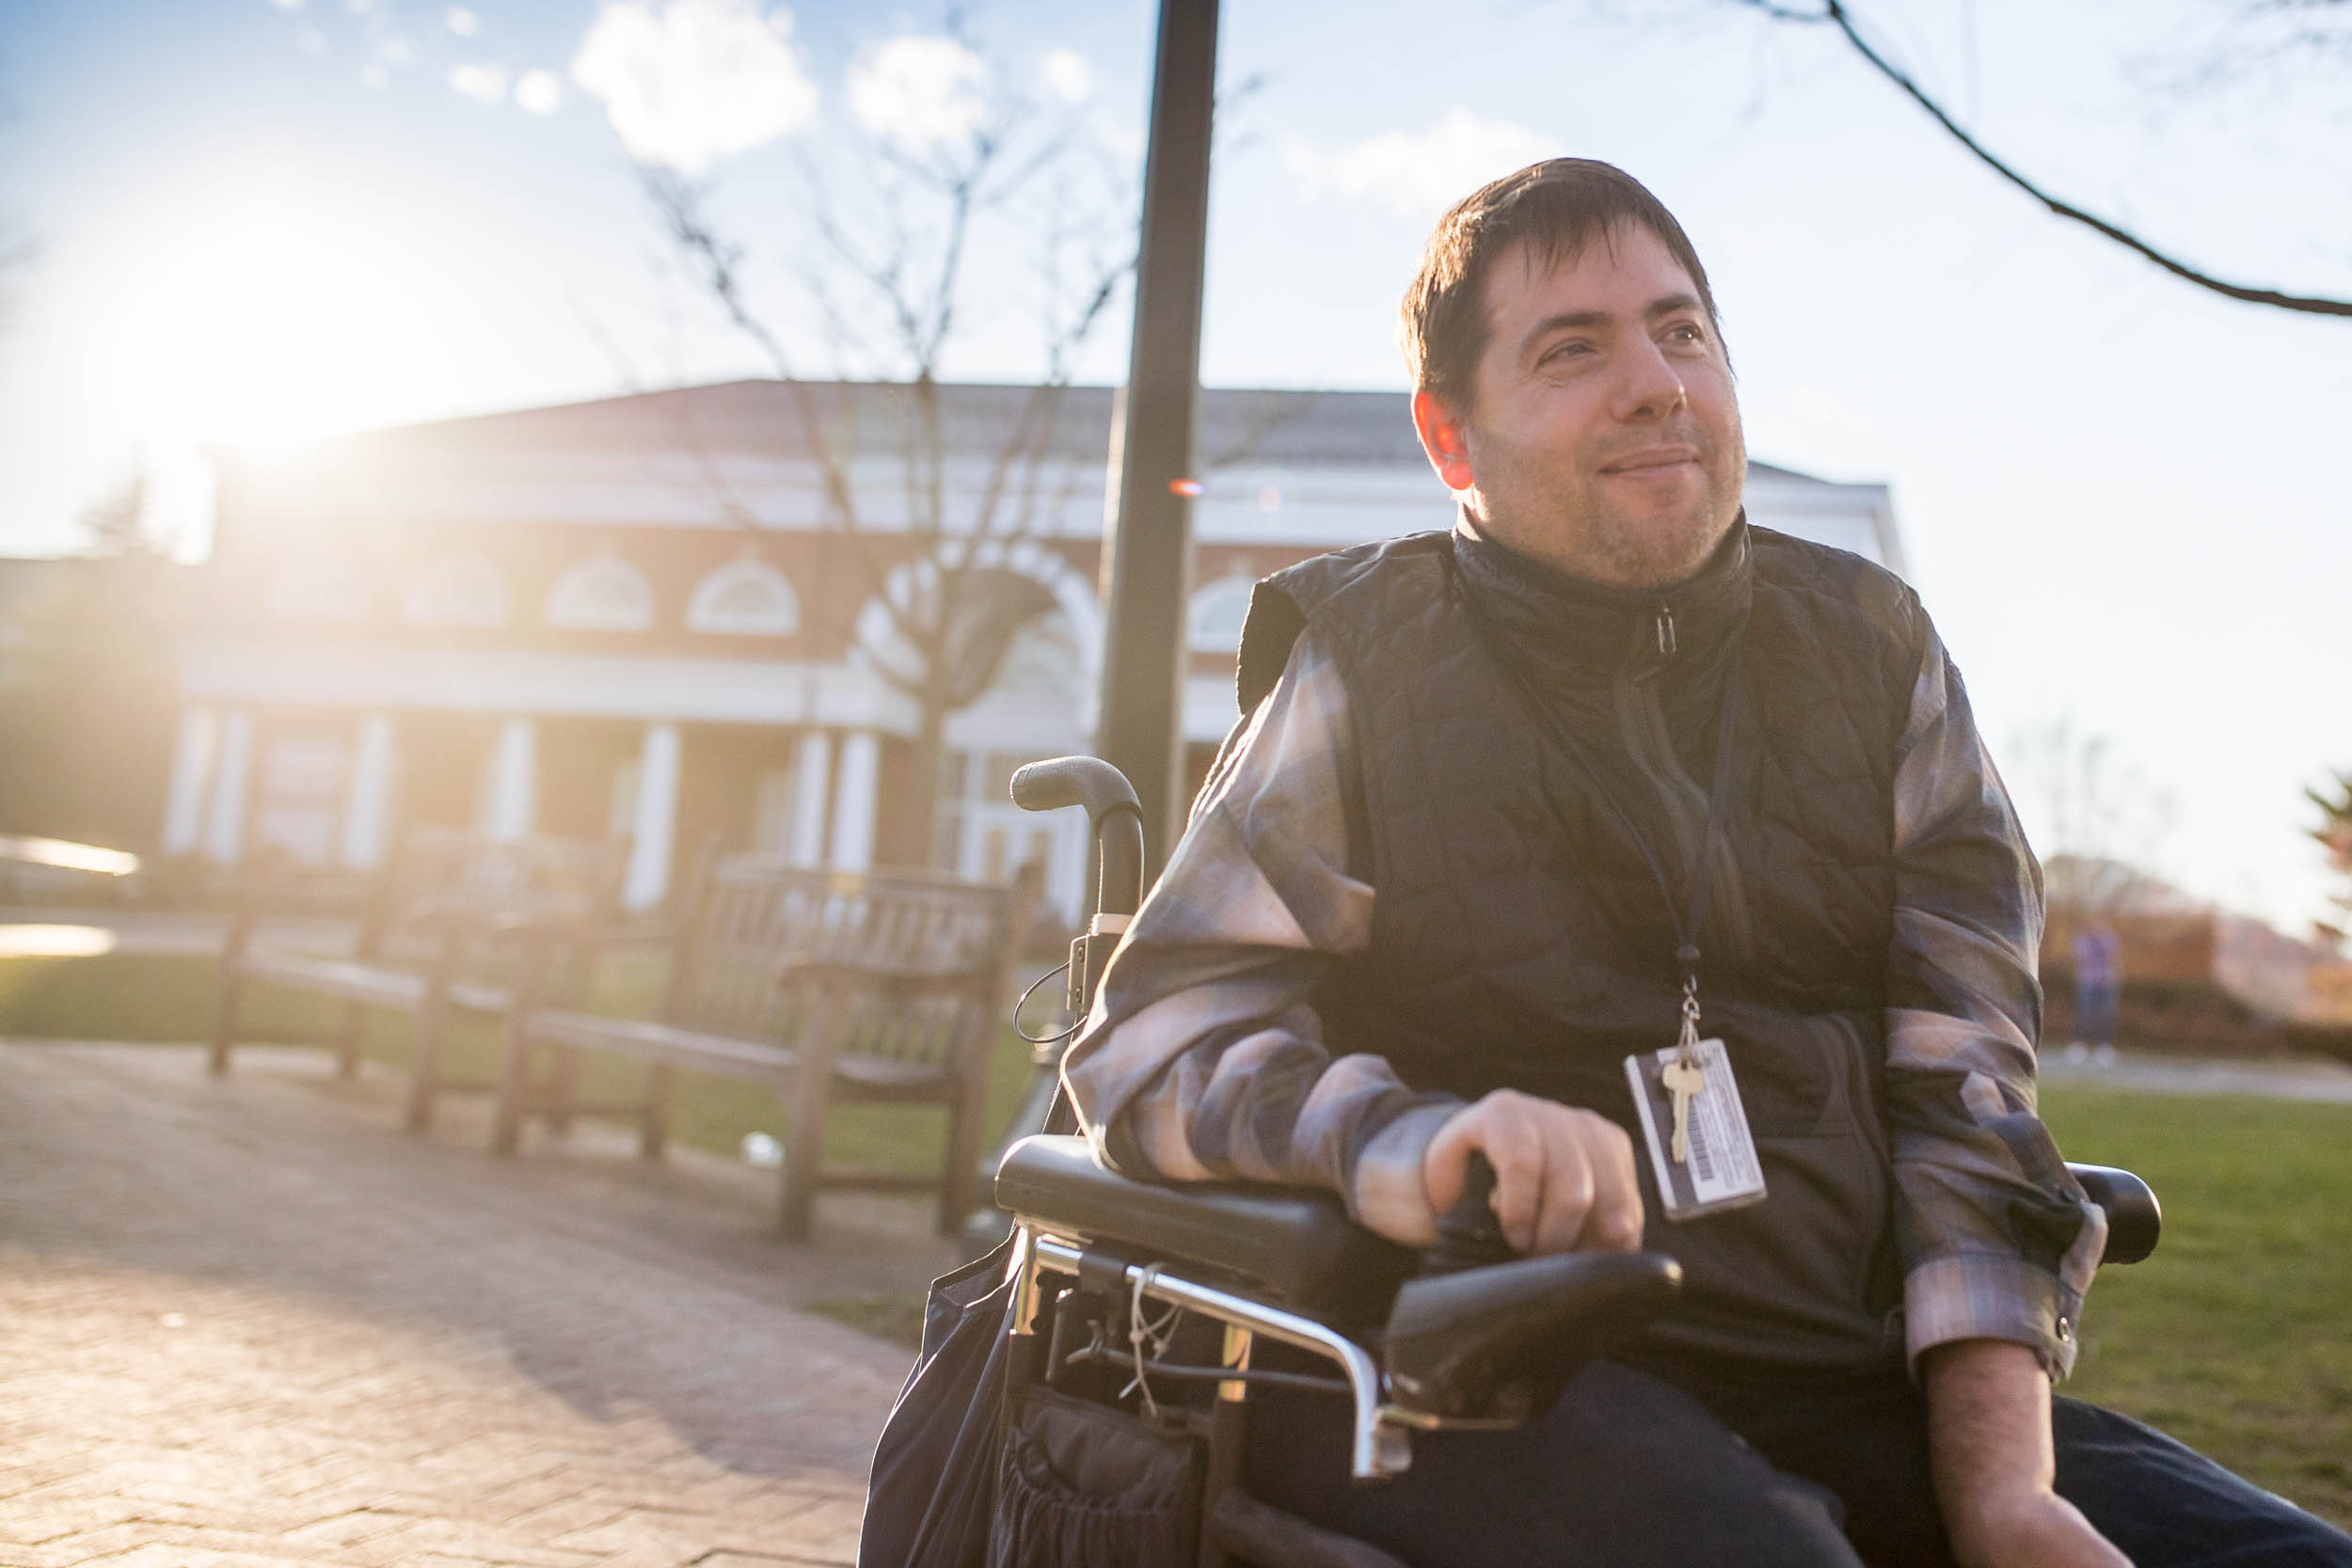 A bicycle accident when he was 12 left Guest paralyzed. He began writing poetry in high school.